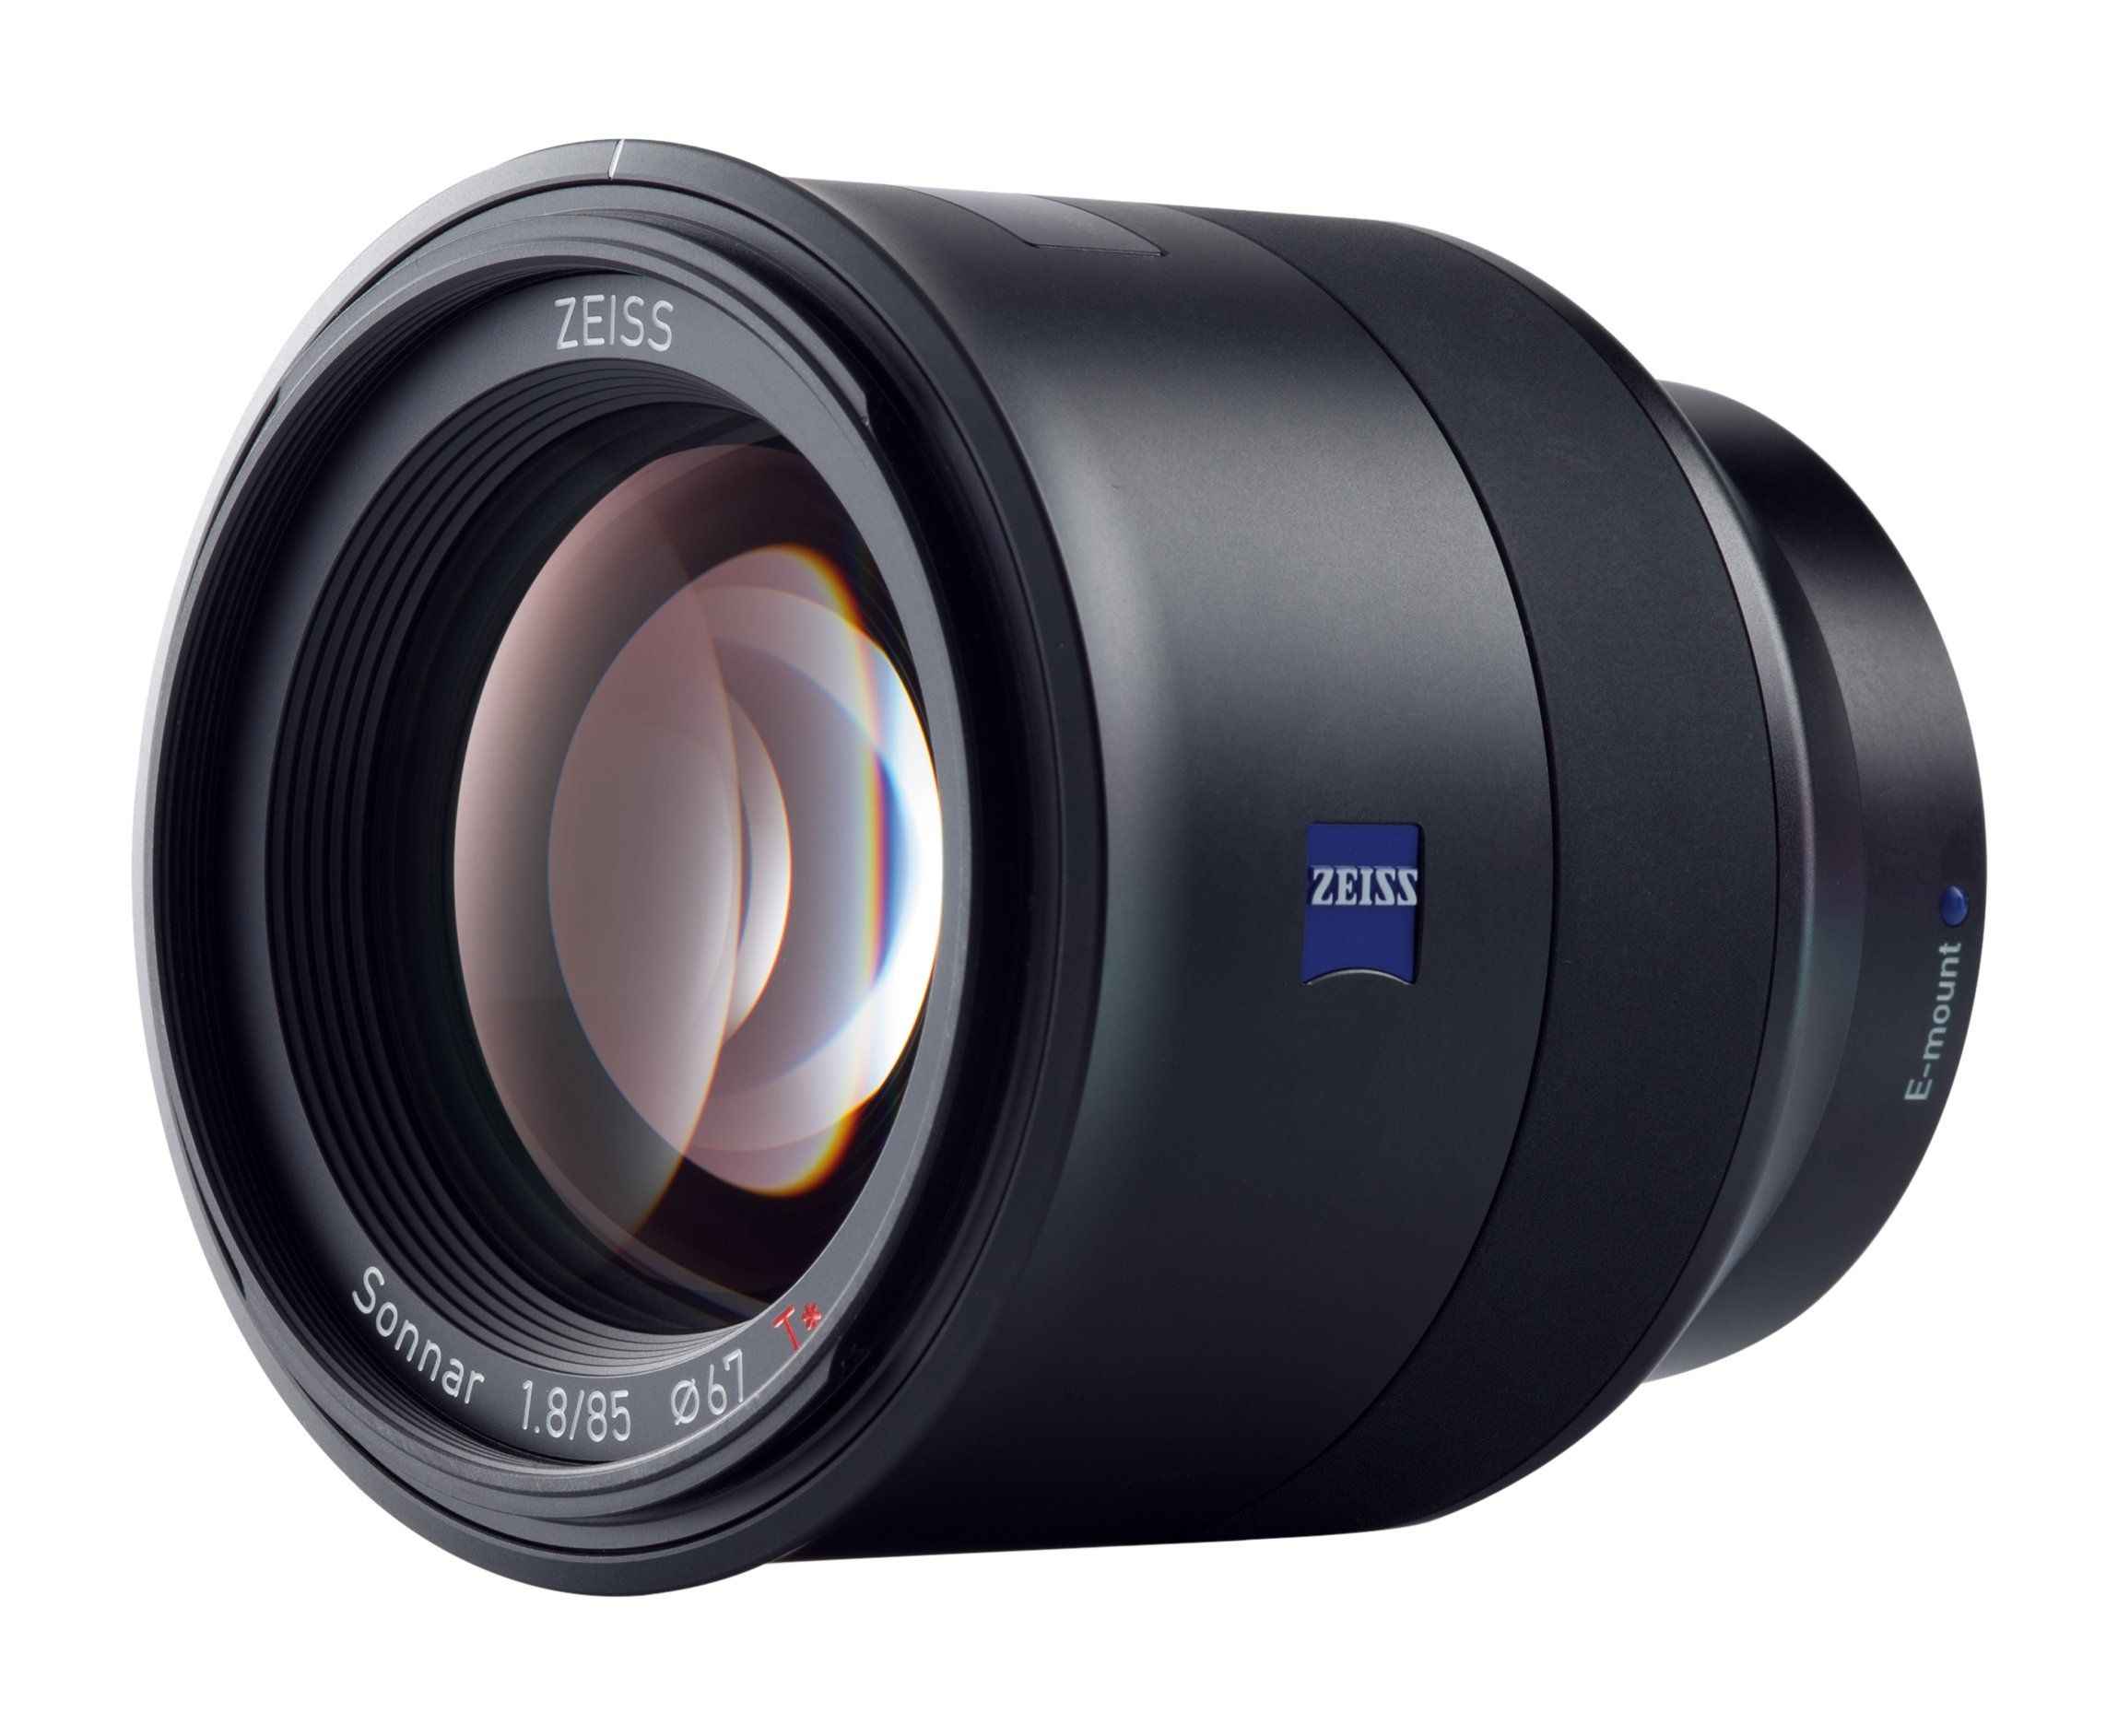 Zeiss Batis 85mm f/1.8 Lens for Sony E Mount | Photography ...